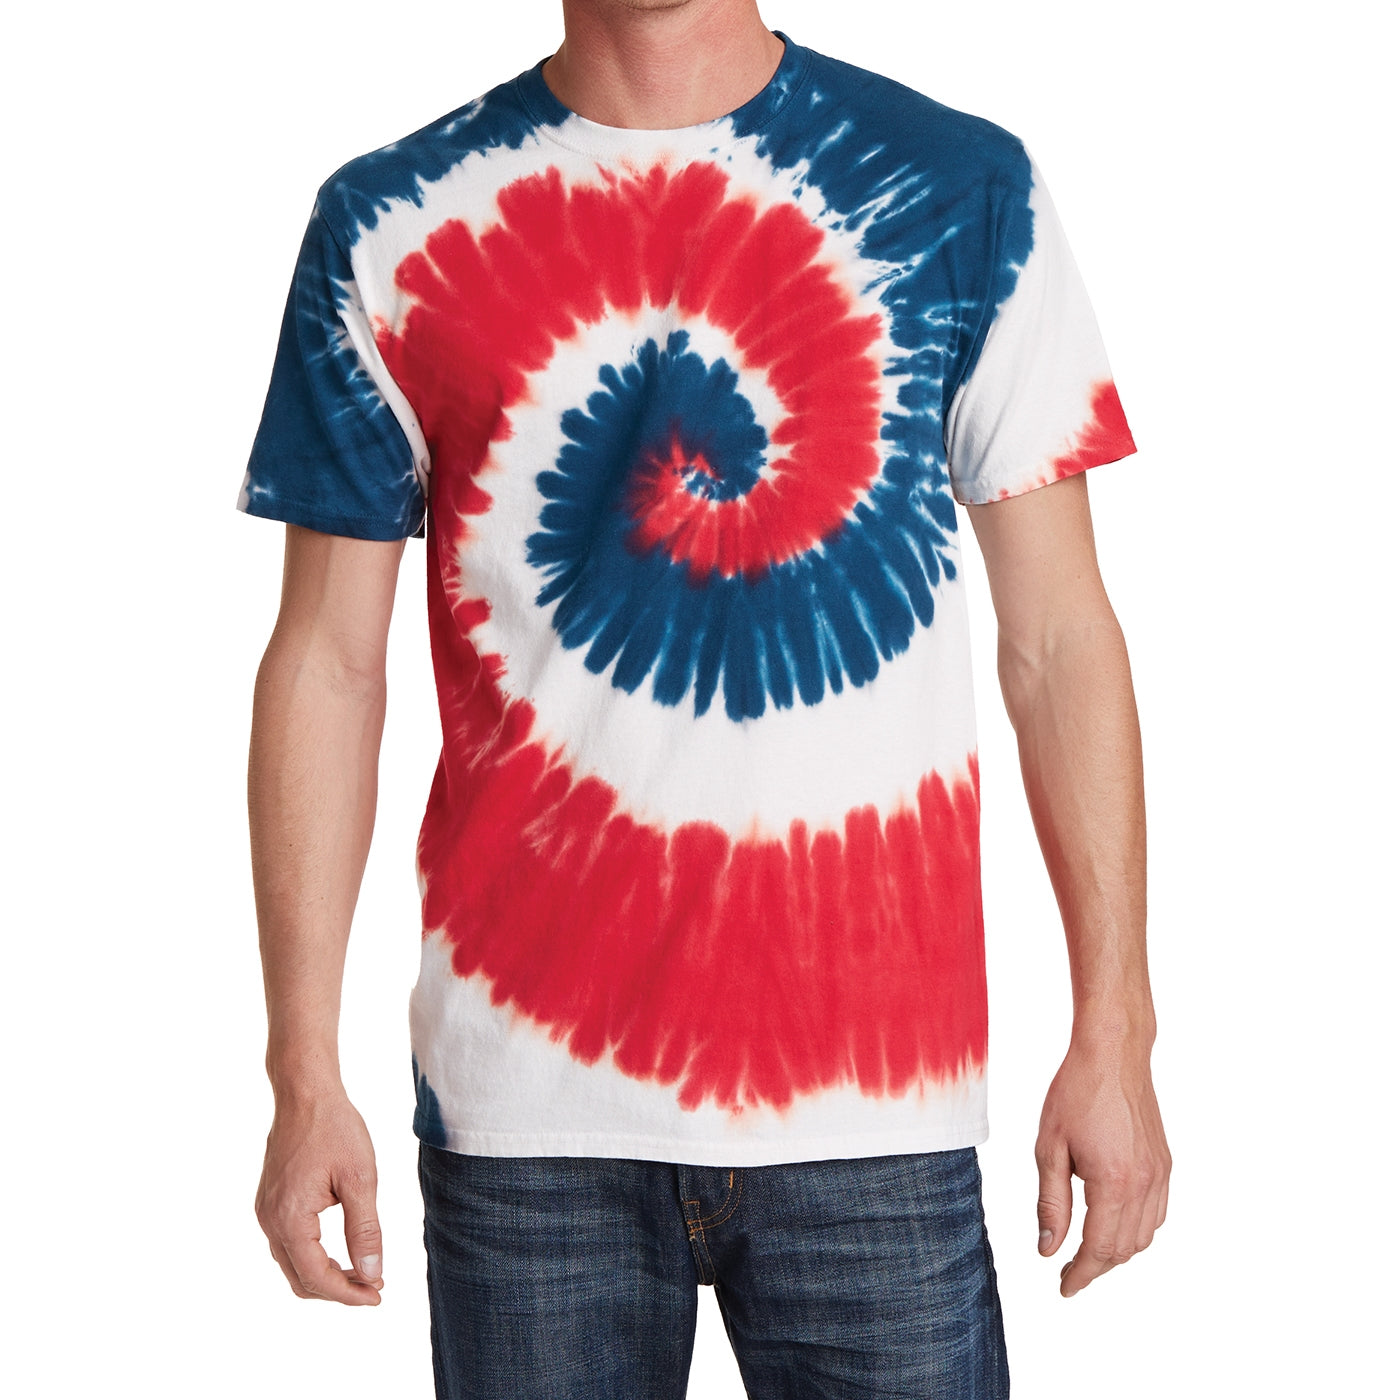 Men's Tie-Dye Tee - USA Rainbow - Front